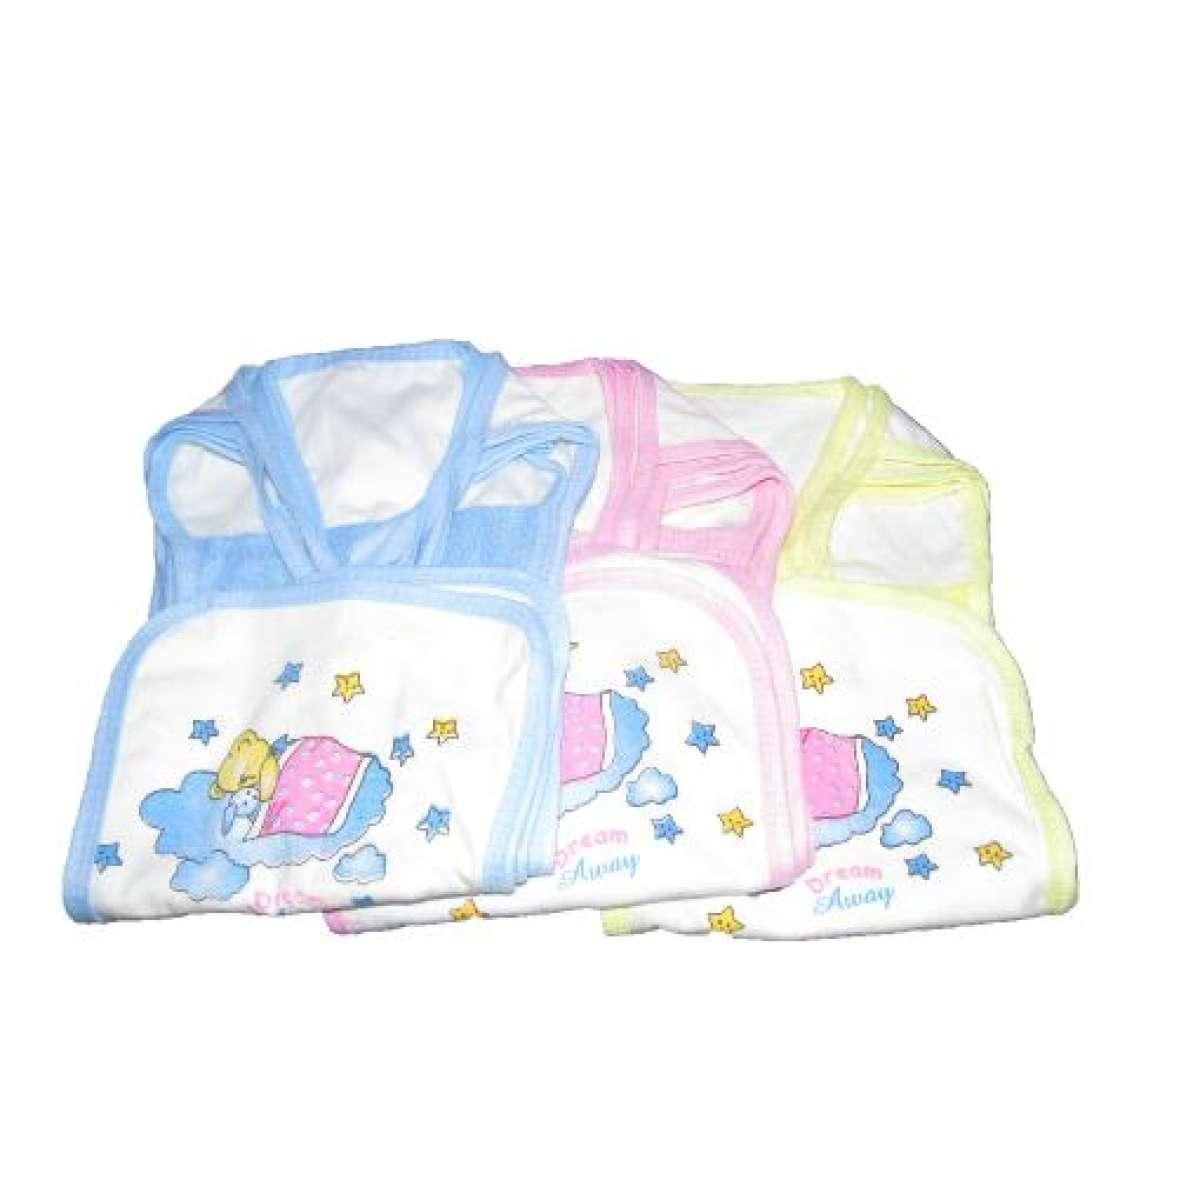 Buy Sell Cheapest Aviva Baju Bayi Best Quality Product Deals Jumper Kancing Depan Popok Tali Pakai Anduk Isi 3 Pcs